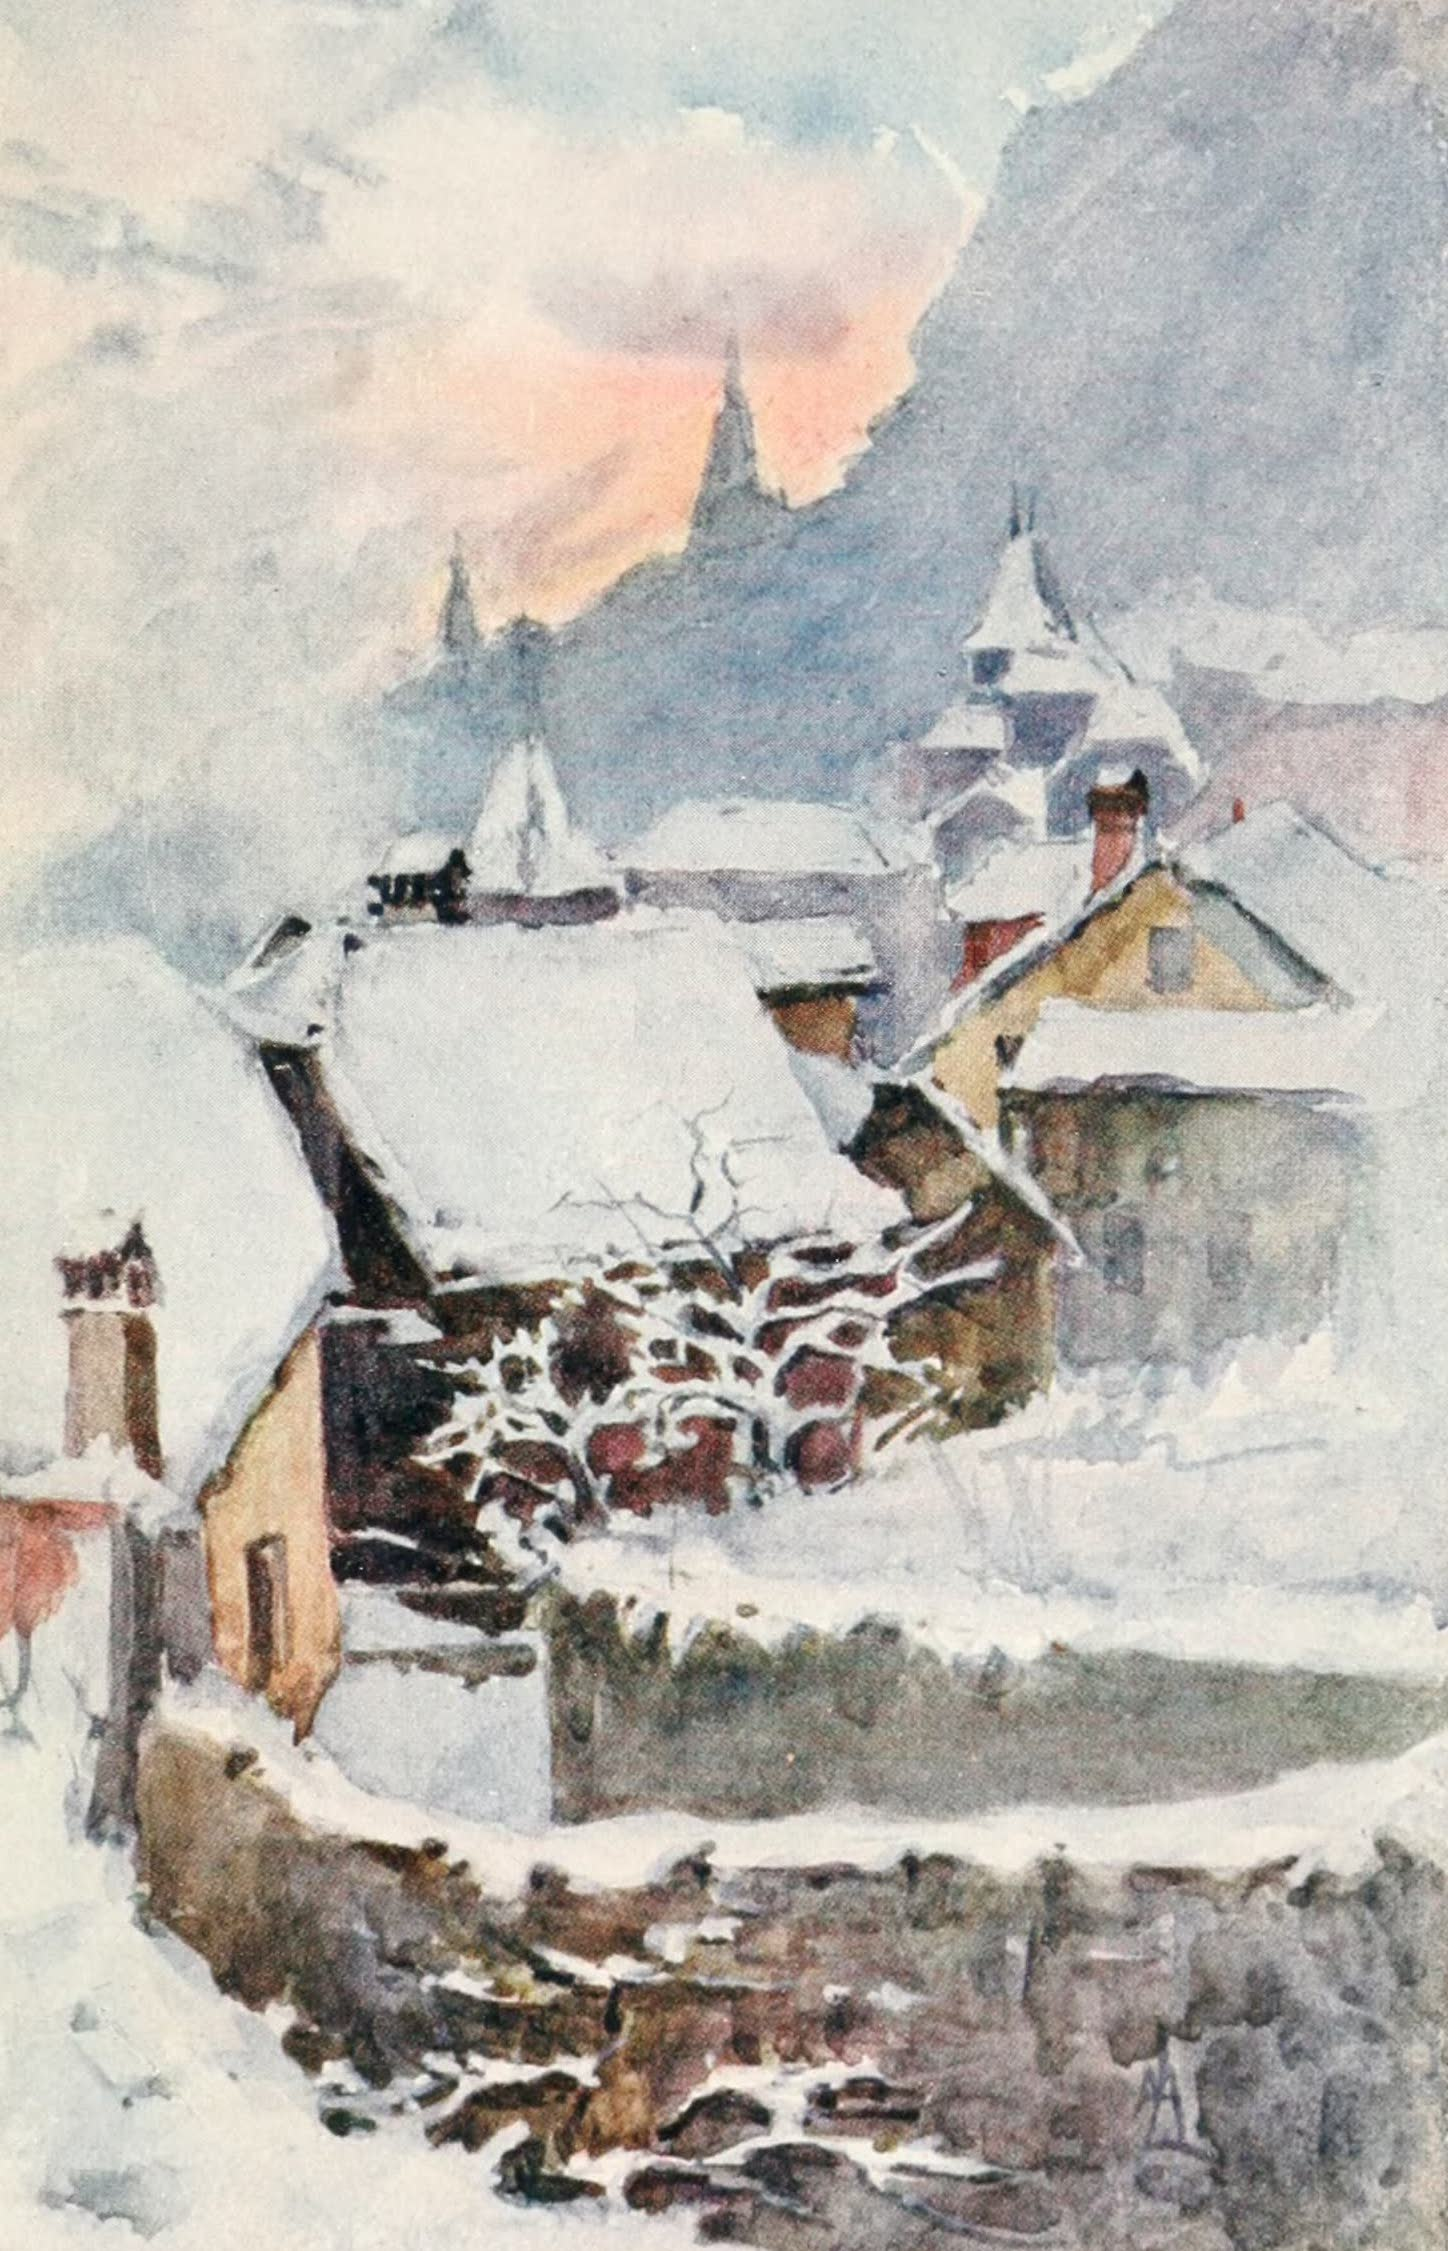 Montreux, Painted and Described - A Peep of Old Montreux, over Veraye : Winter Evening (1908)